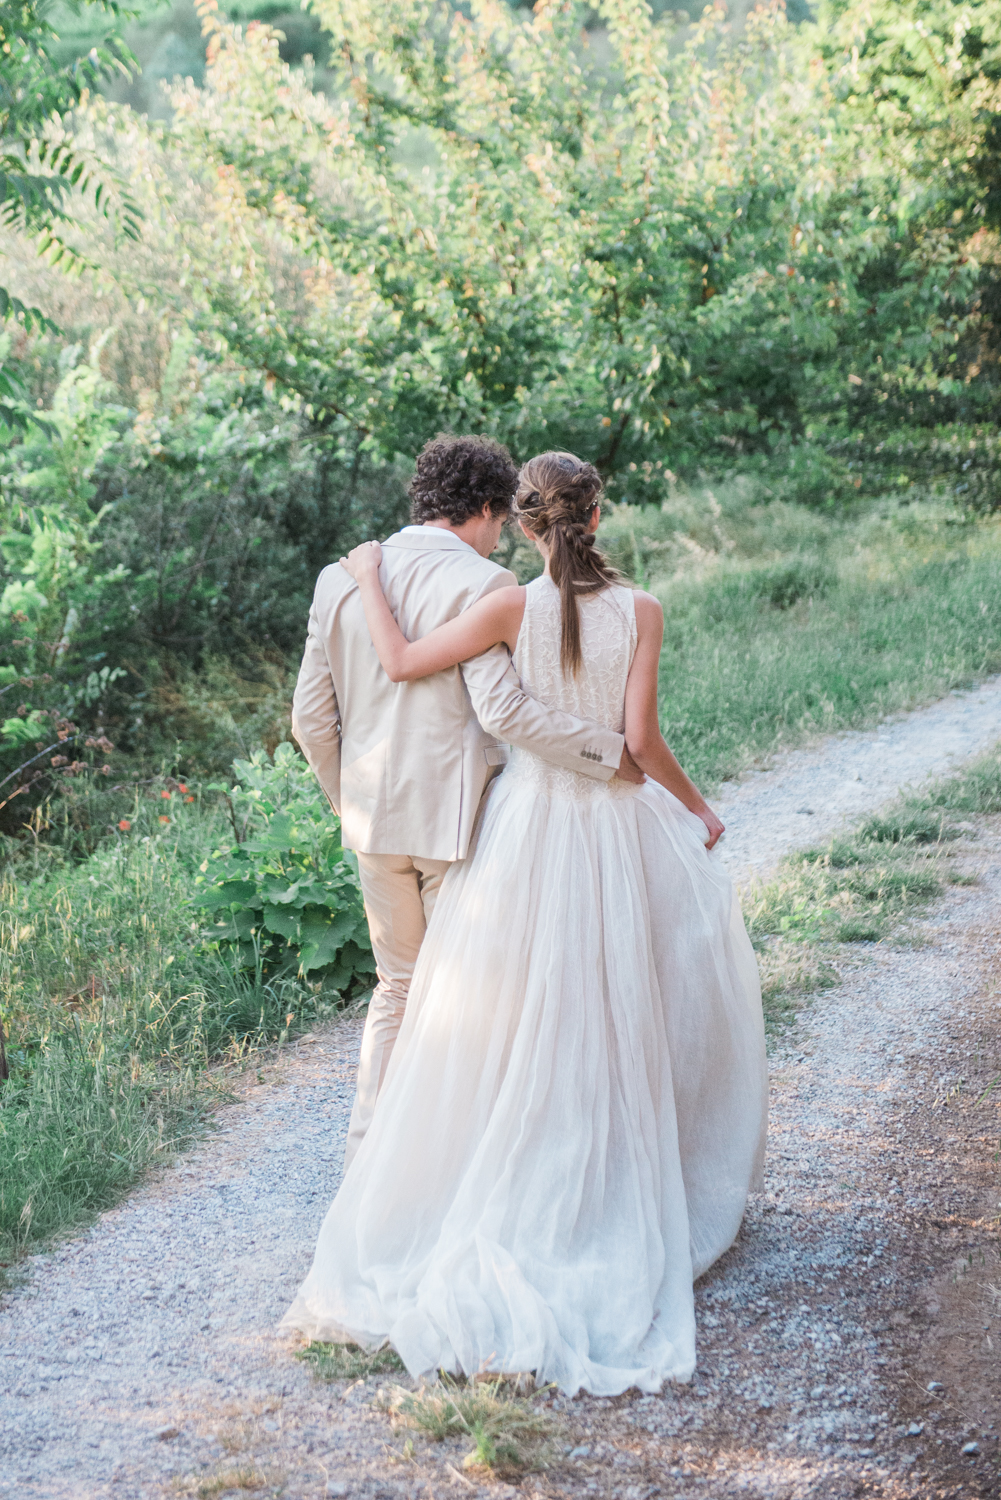 A bride and groom walking on a path in Tuscany, Italy